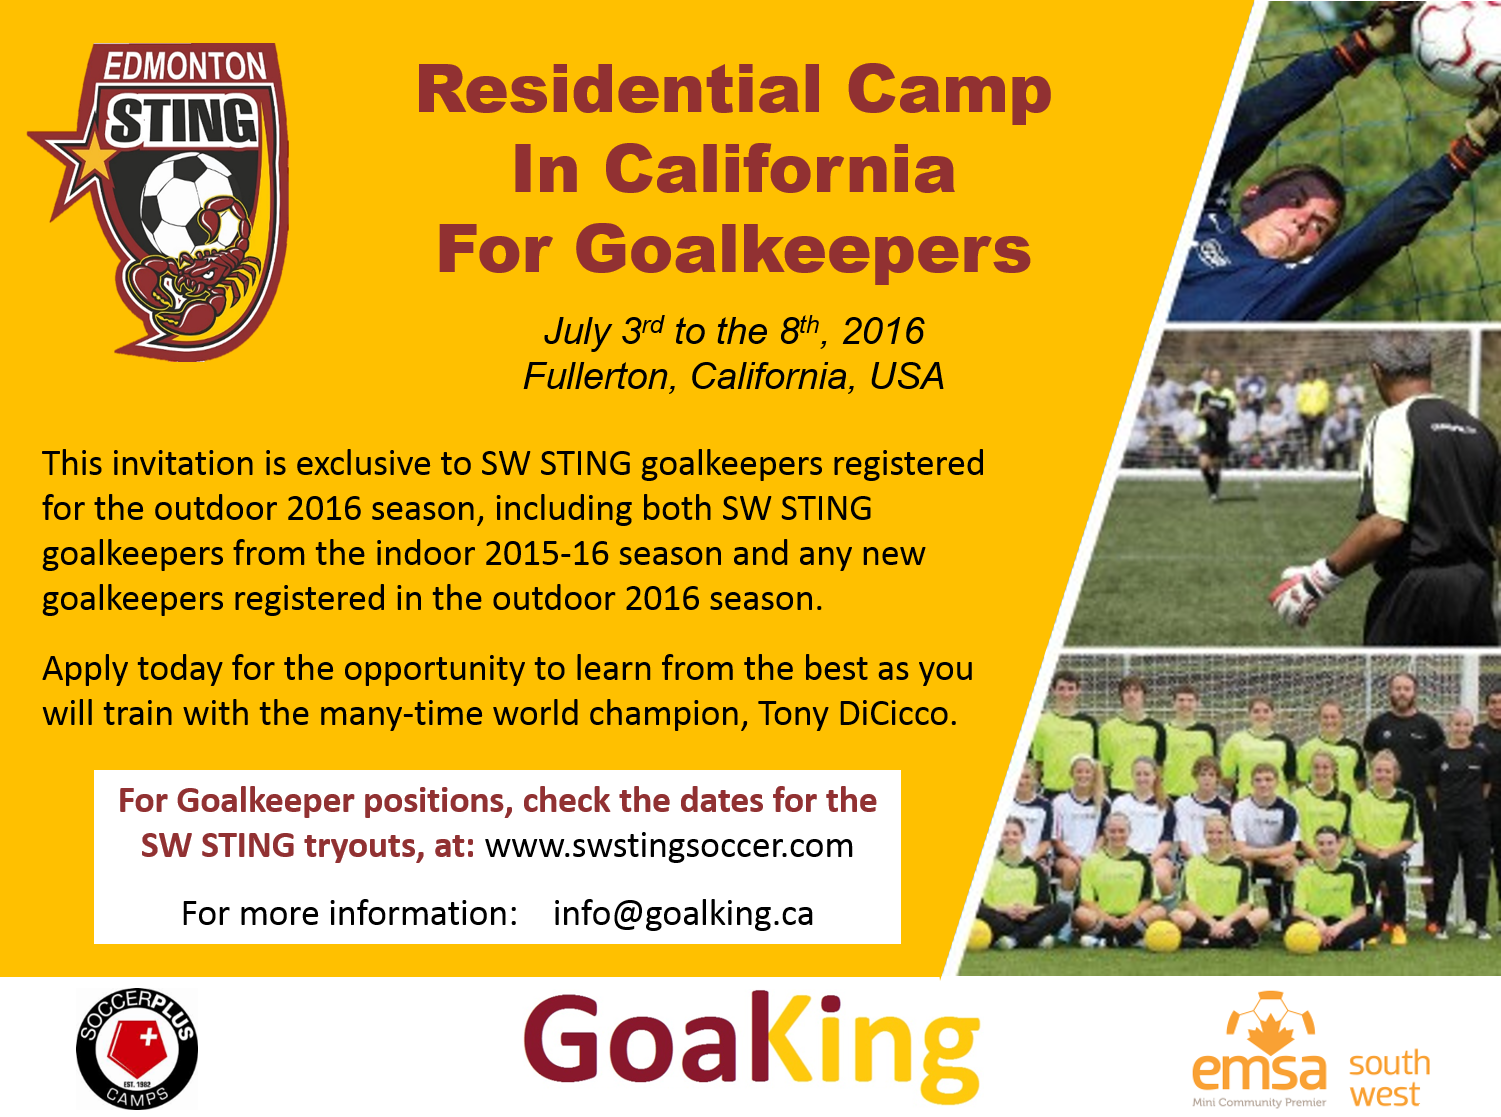 GOALKING is organizing an international trip with youth goalkeeper members of the SW STING Soccer Club, to Fullerton, California, to attend the residential camp of world-class goalkeeper and coach Tony DiCiccio.  In this camp, SW STING goalkeepers will learn and train in the field and classroom from July 3rd to the 8th.  This is only for SW STING goalkeepers.  Two programs will be offered: the Performance Program and the NTC Program.  The Performance Program is an advanced sophisticated training for goalkeepers 10 to 22 years old who have the desire to increase their knowledge in all the technical and tactical aspects of the goalkeeping position as part of their yearly development as goalkeepers, whereas the NTC program is a high-level functional training environment for top goalkeepers 15 to 22 years of age with aspirations of playing in college or beyond. For more information please write to:  info@goalking.ca  .